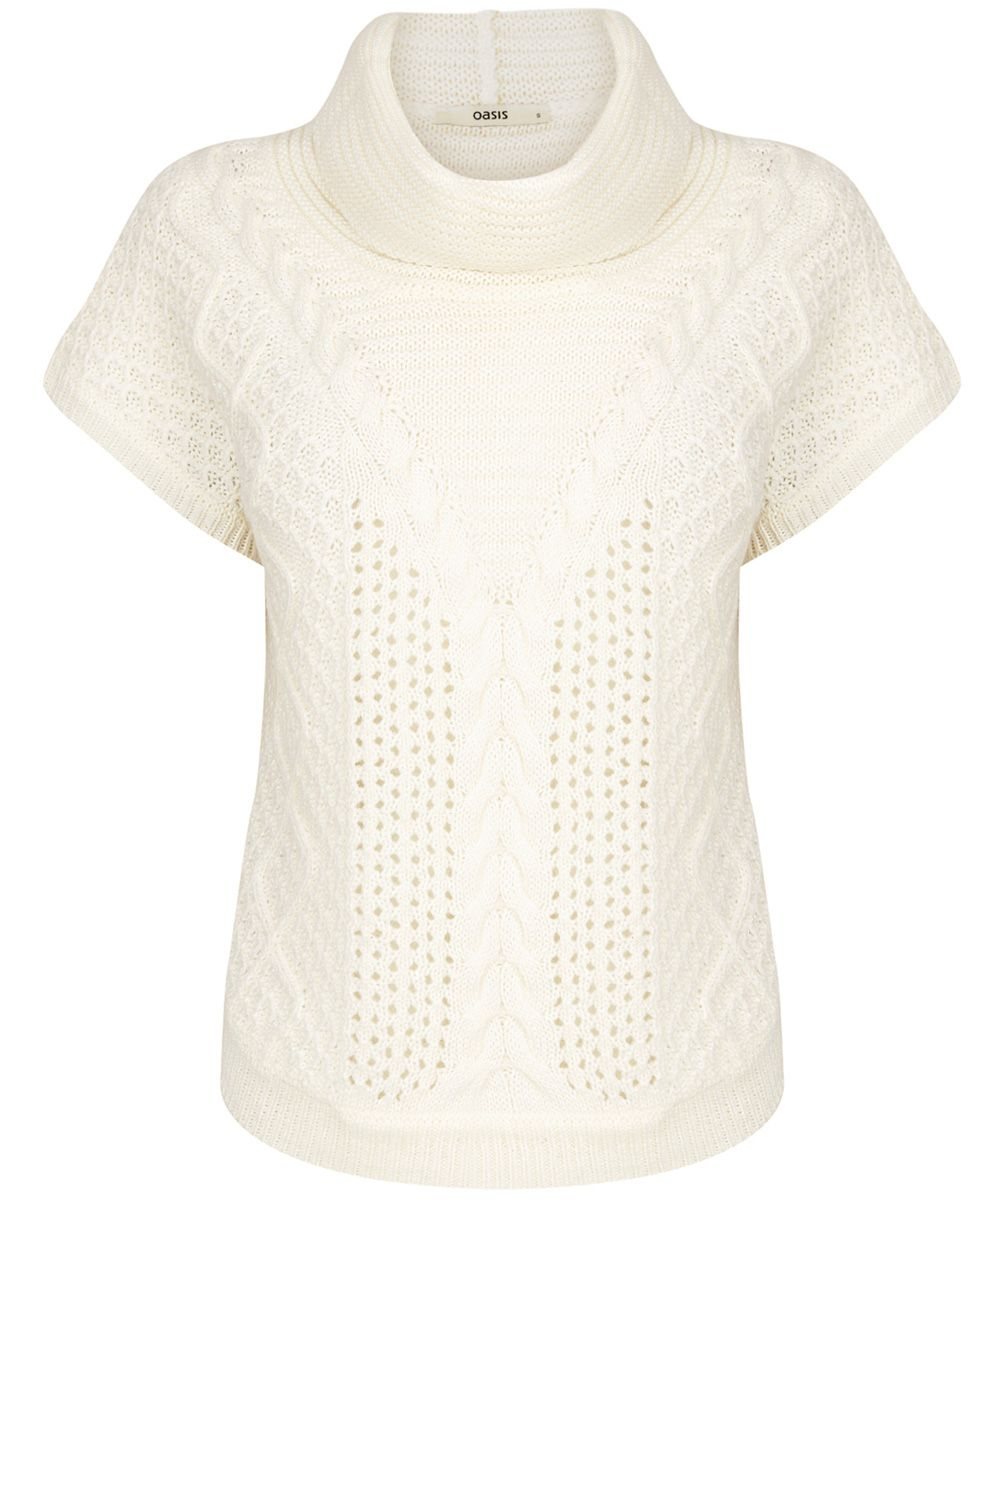 Oasis Cable Trapeze Cowl Neck Top